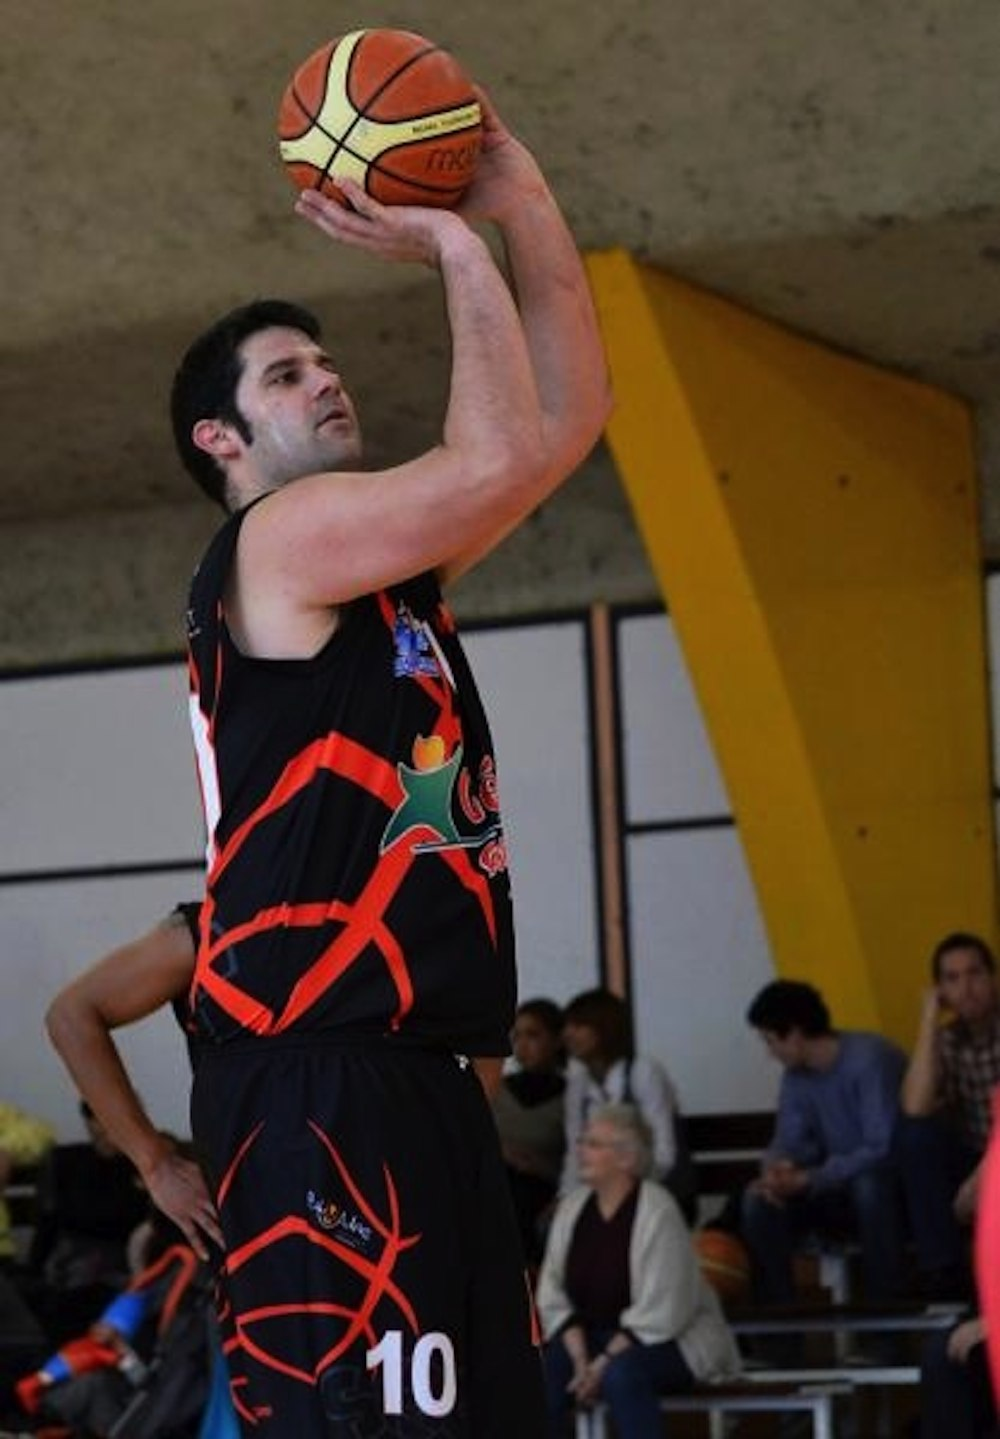 Fabien Dubos SO Carcassonne PNM 2012-13.jpg